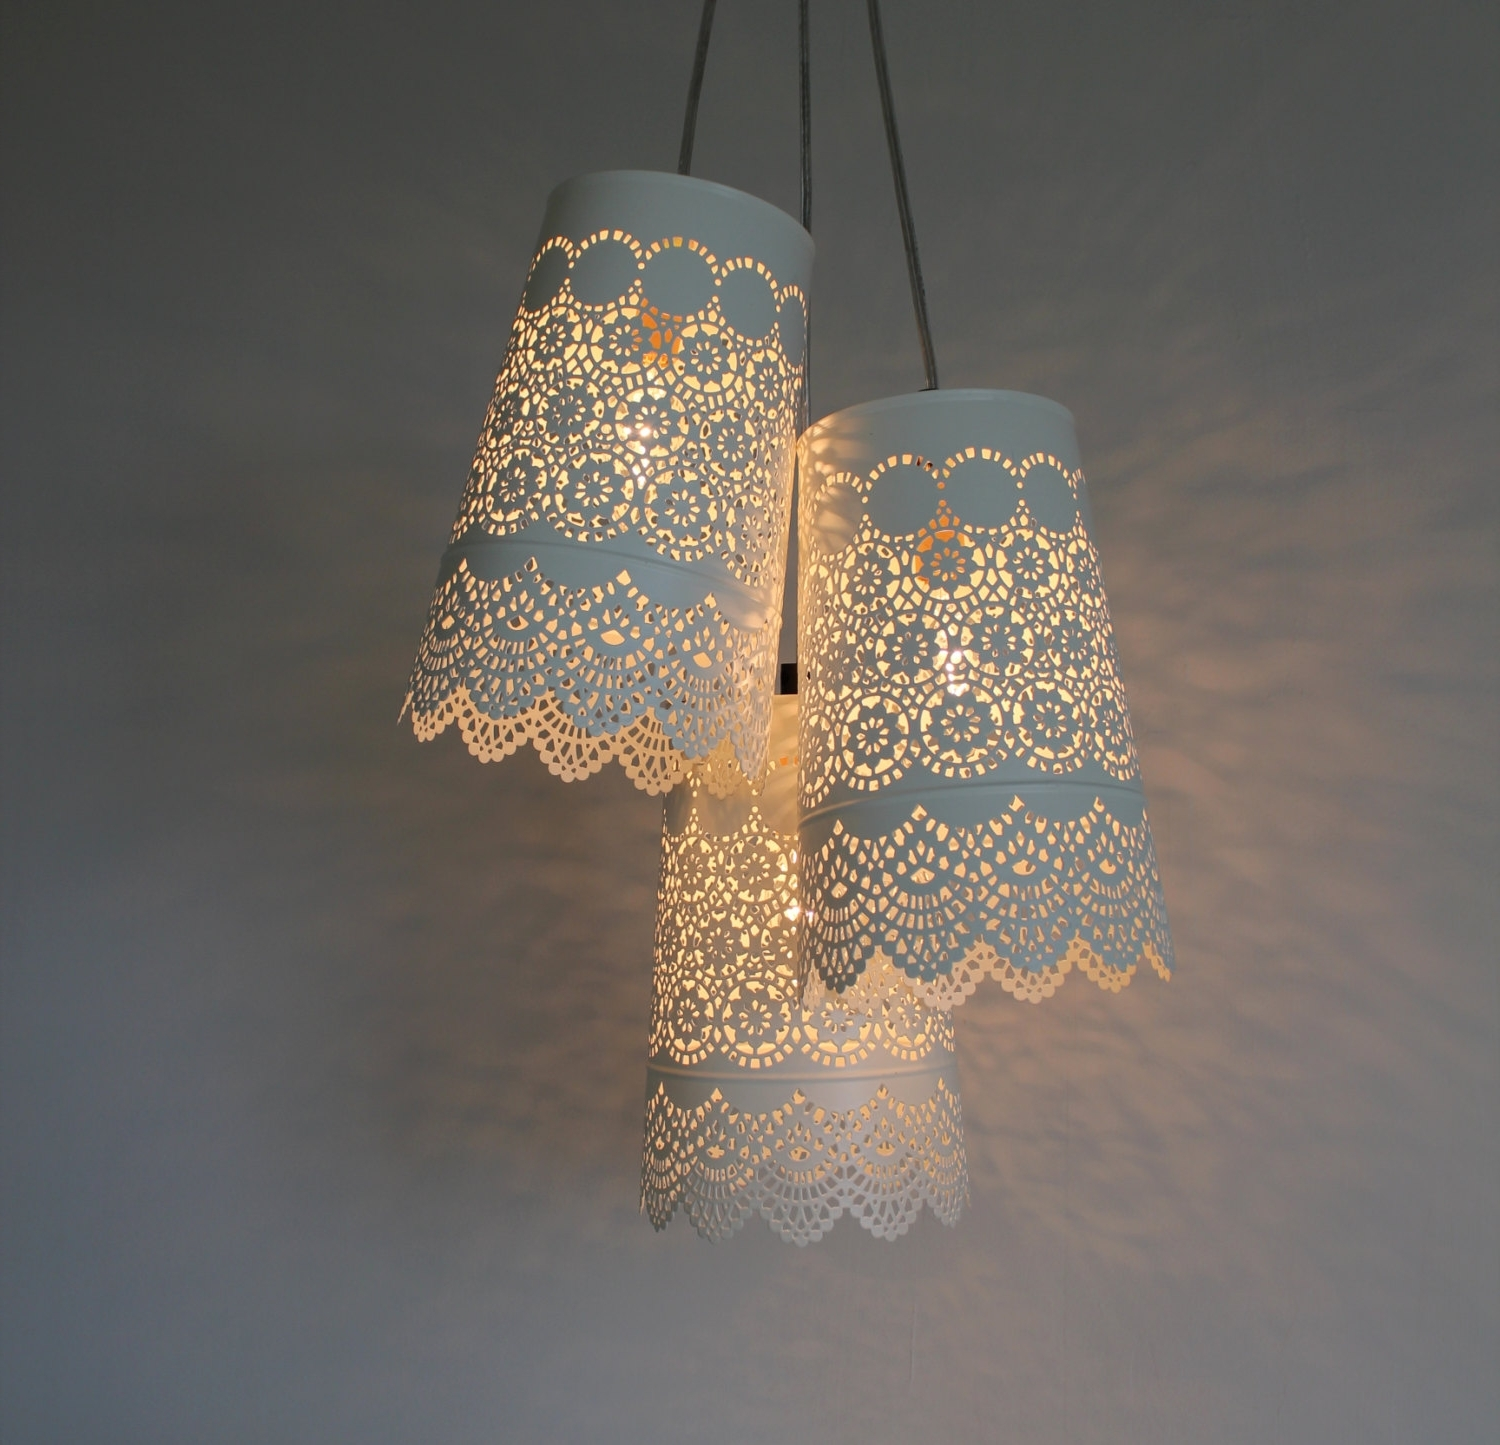 Lampshades For Chandeliers In Famous Small Lamp Shades For Chandeliers (View 17 of 20)